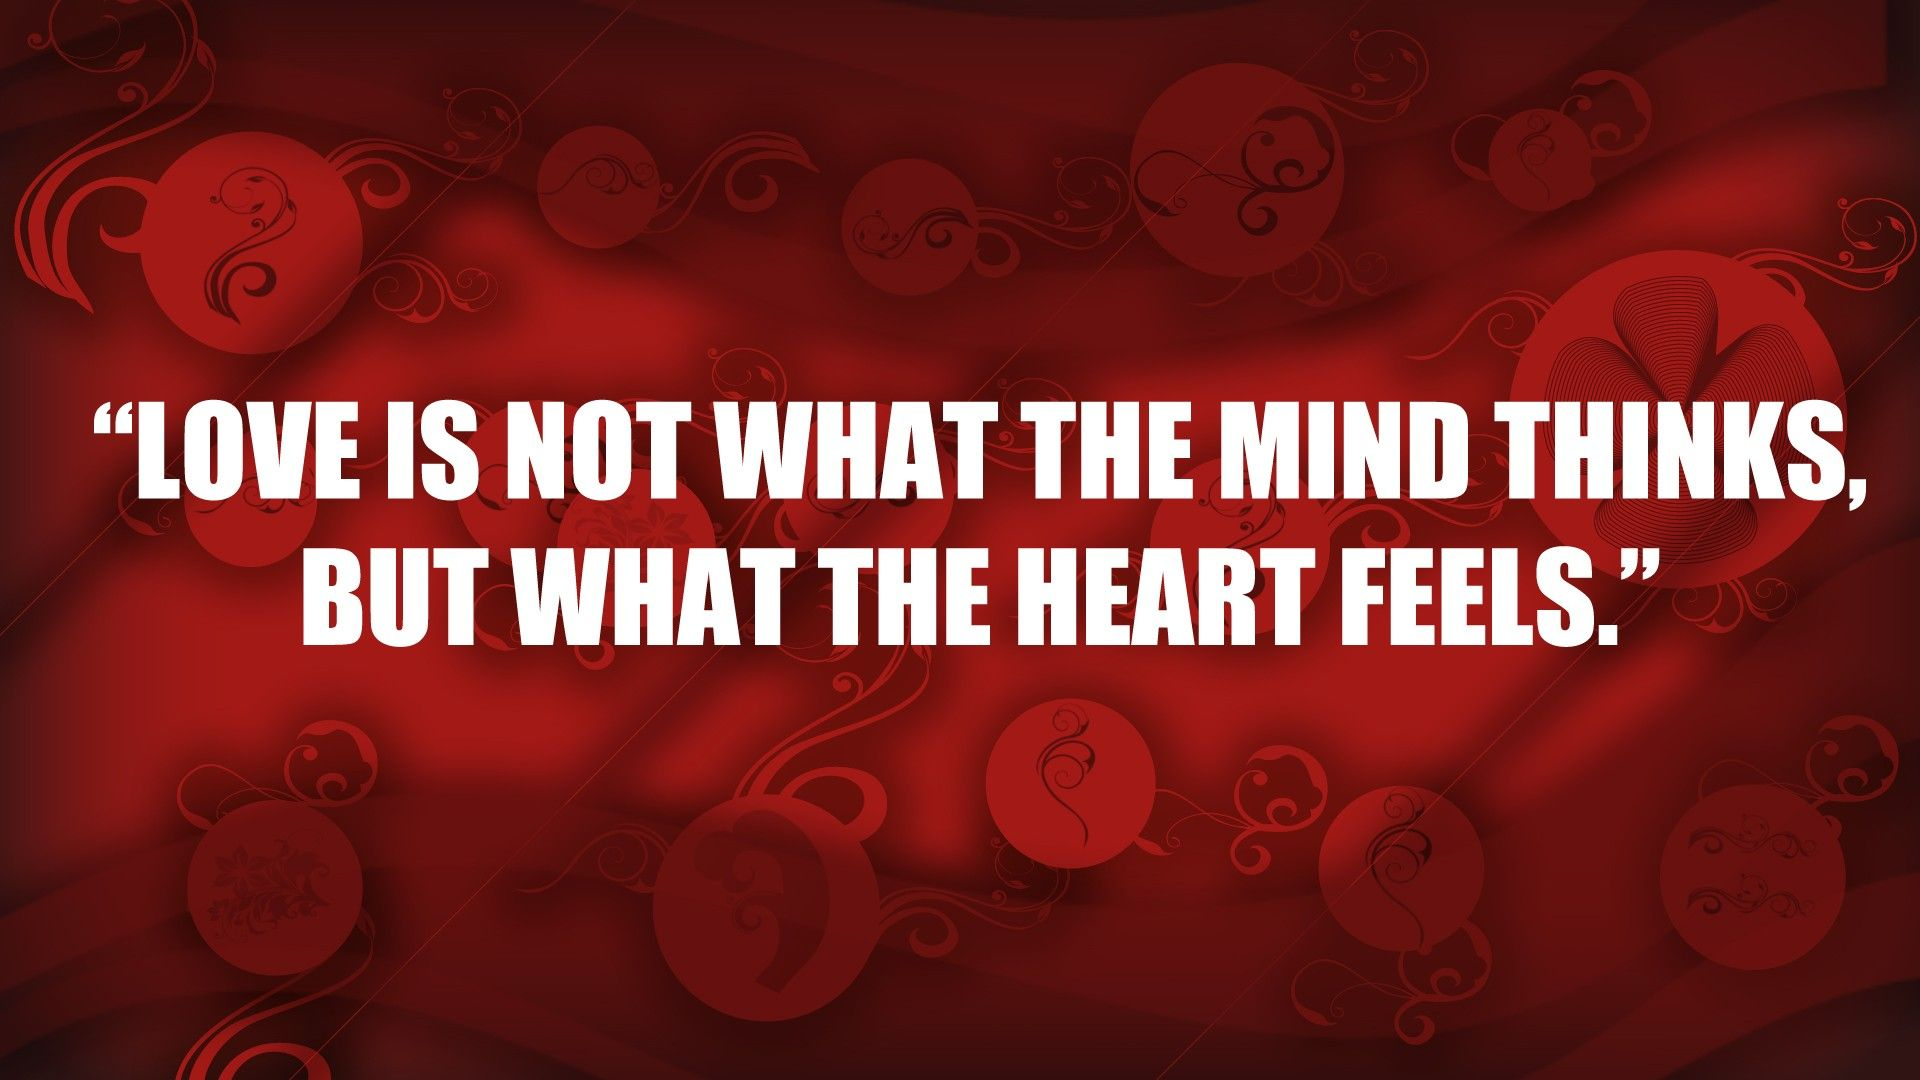 HD Wallpapers With Love Quotes